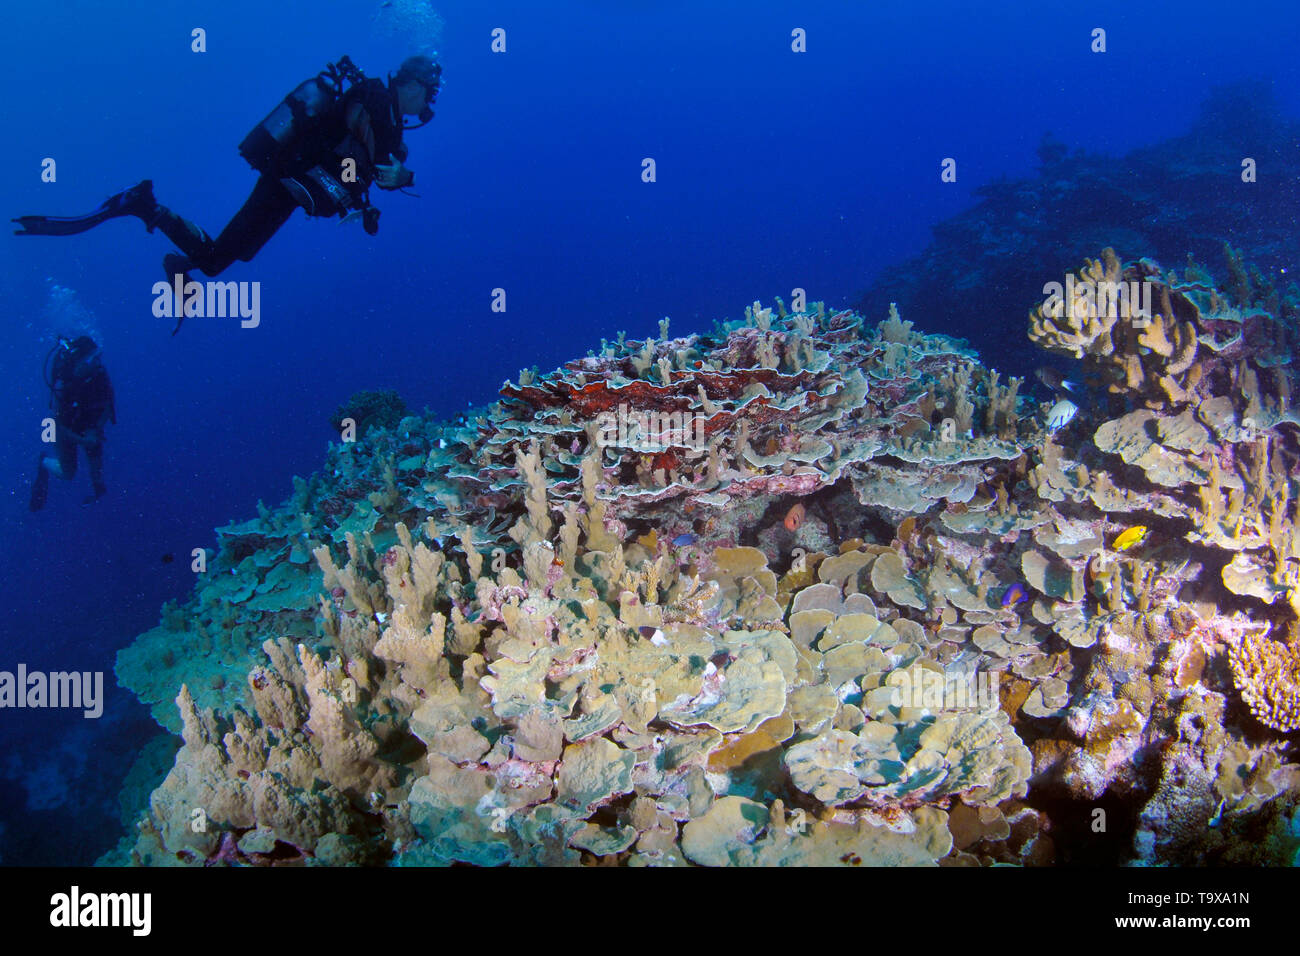 Divers explore pristine a coral reef in Wallis Island, Wallis & Futuna, South Pacific - Stock Image